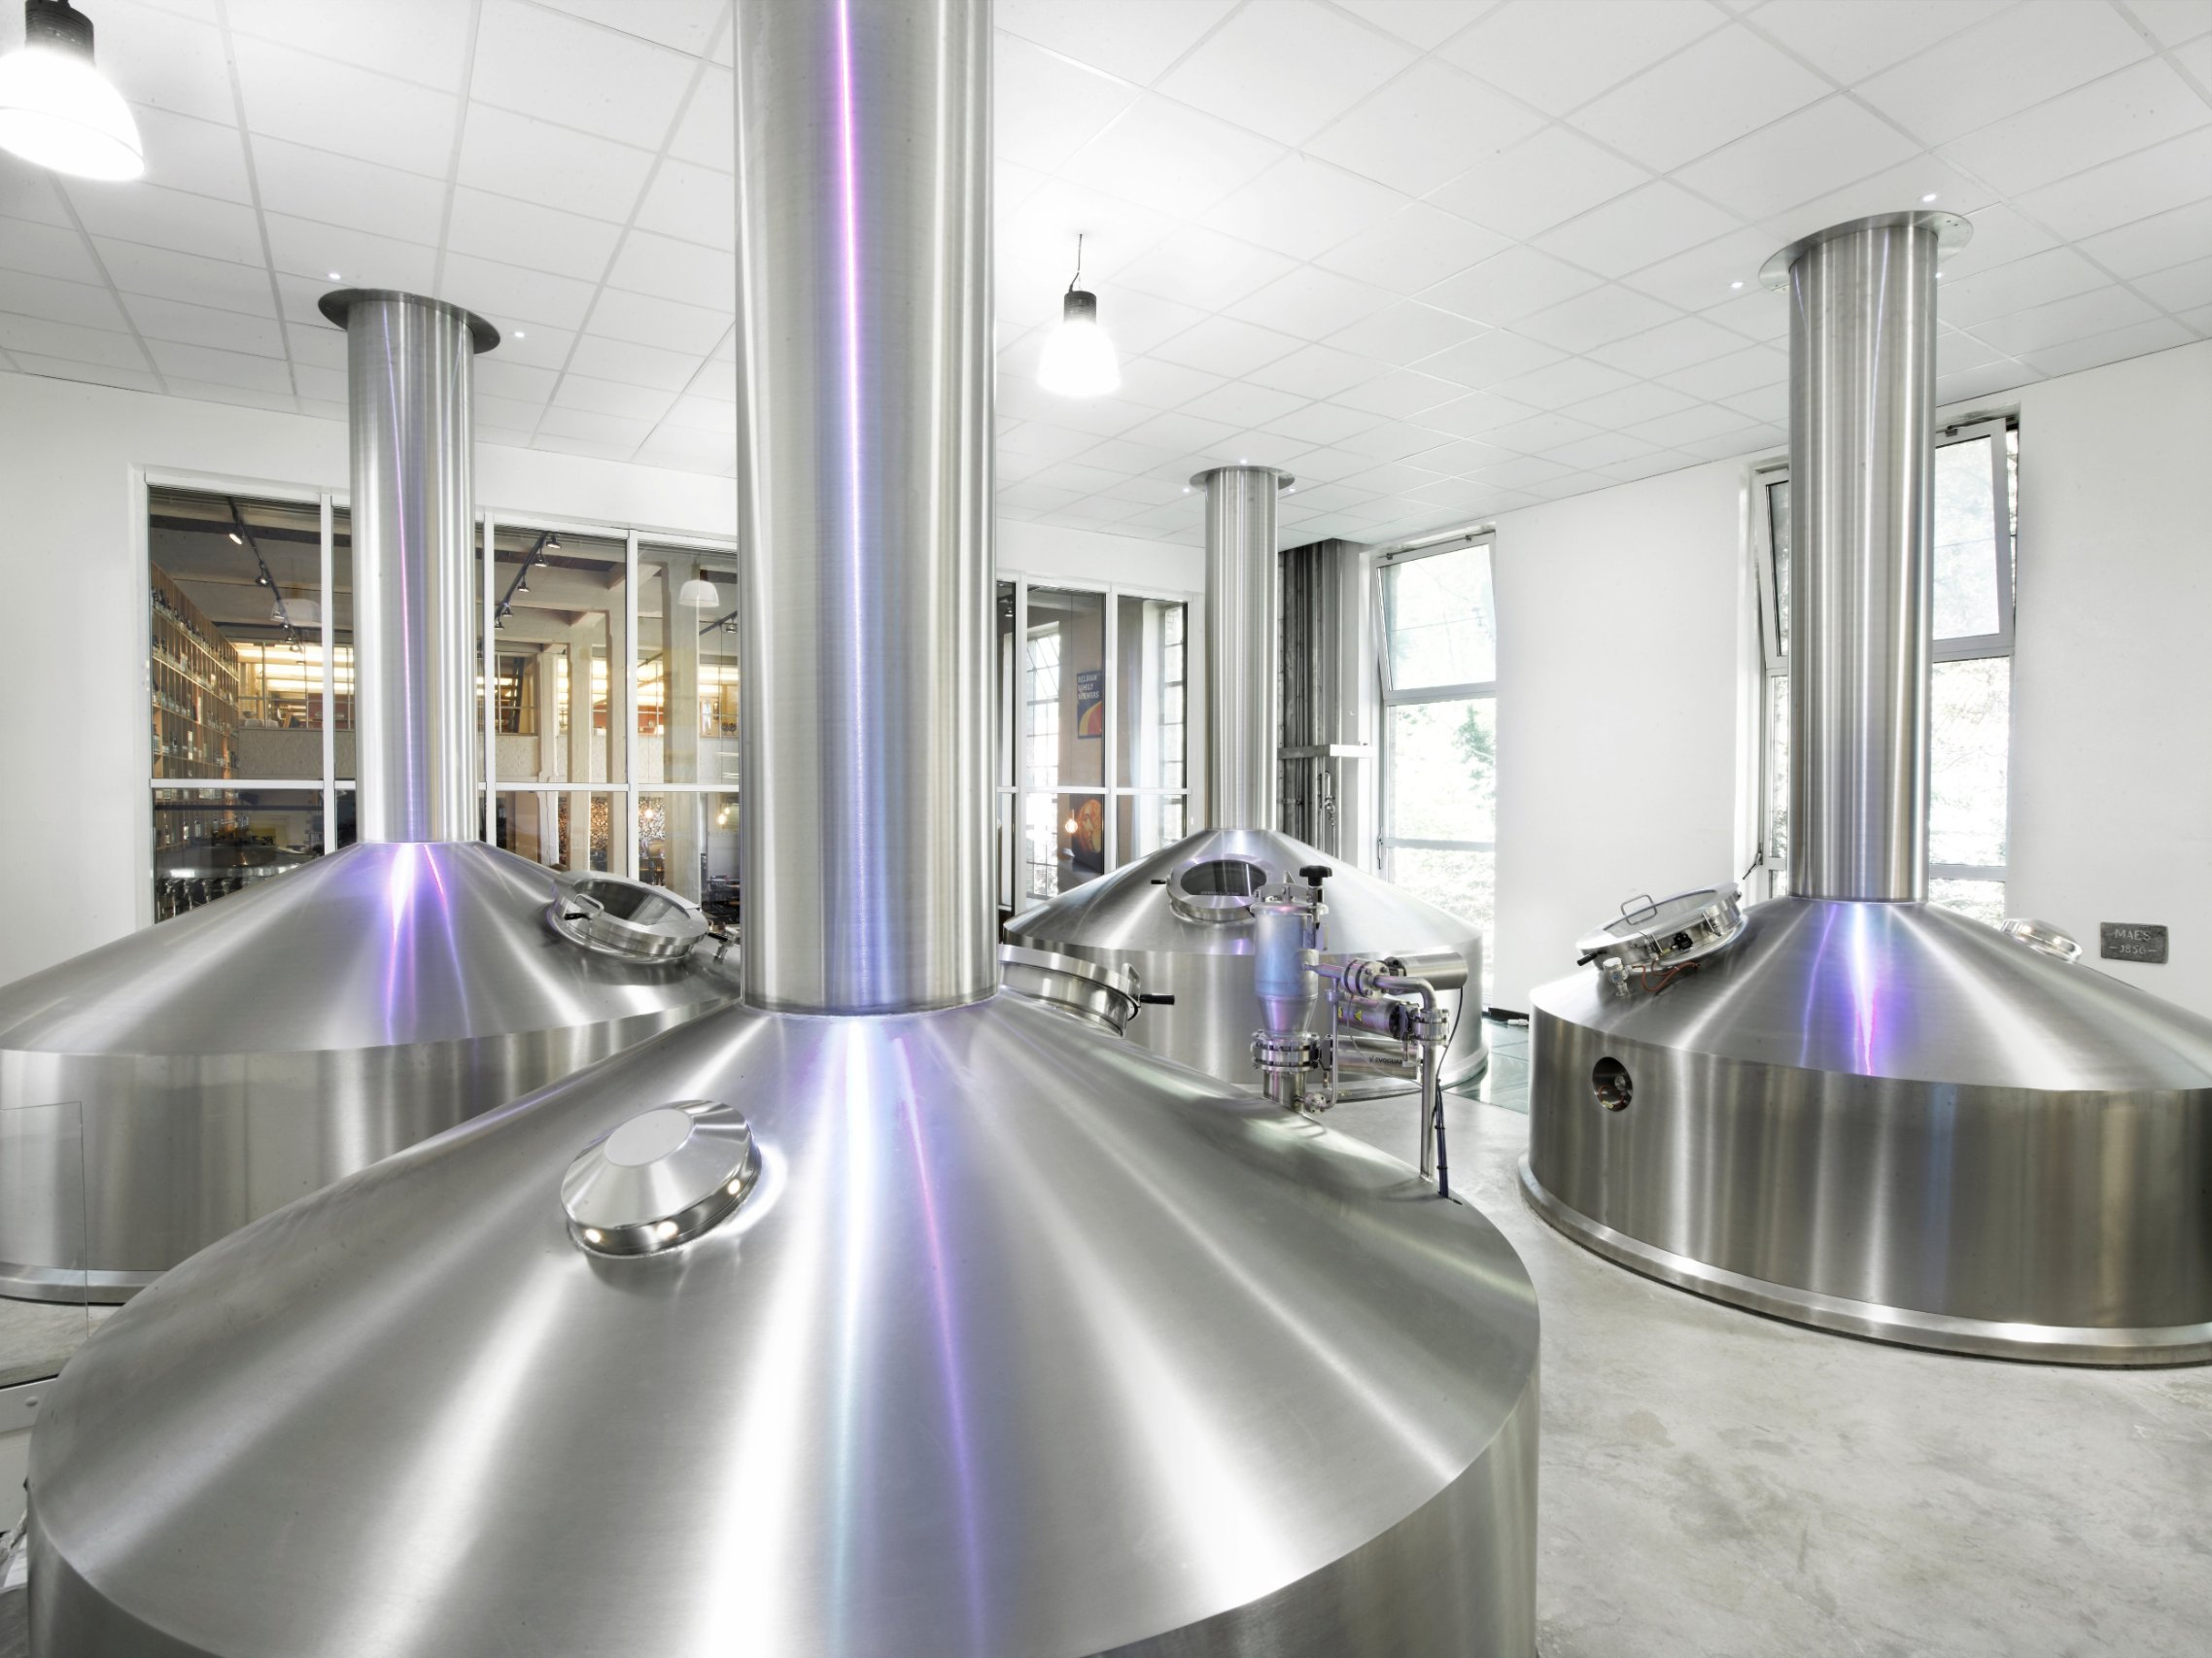 Belgium brewery tours: Best places for beer lovers | CNN Travel